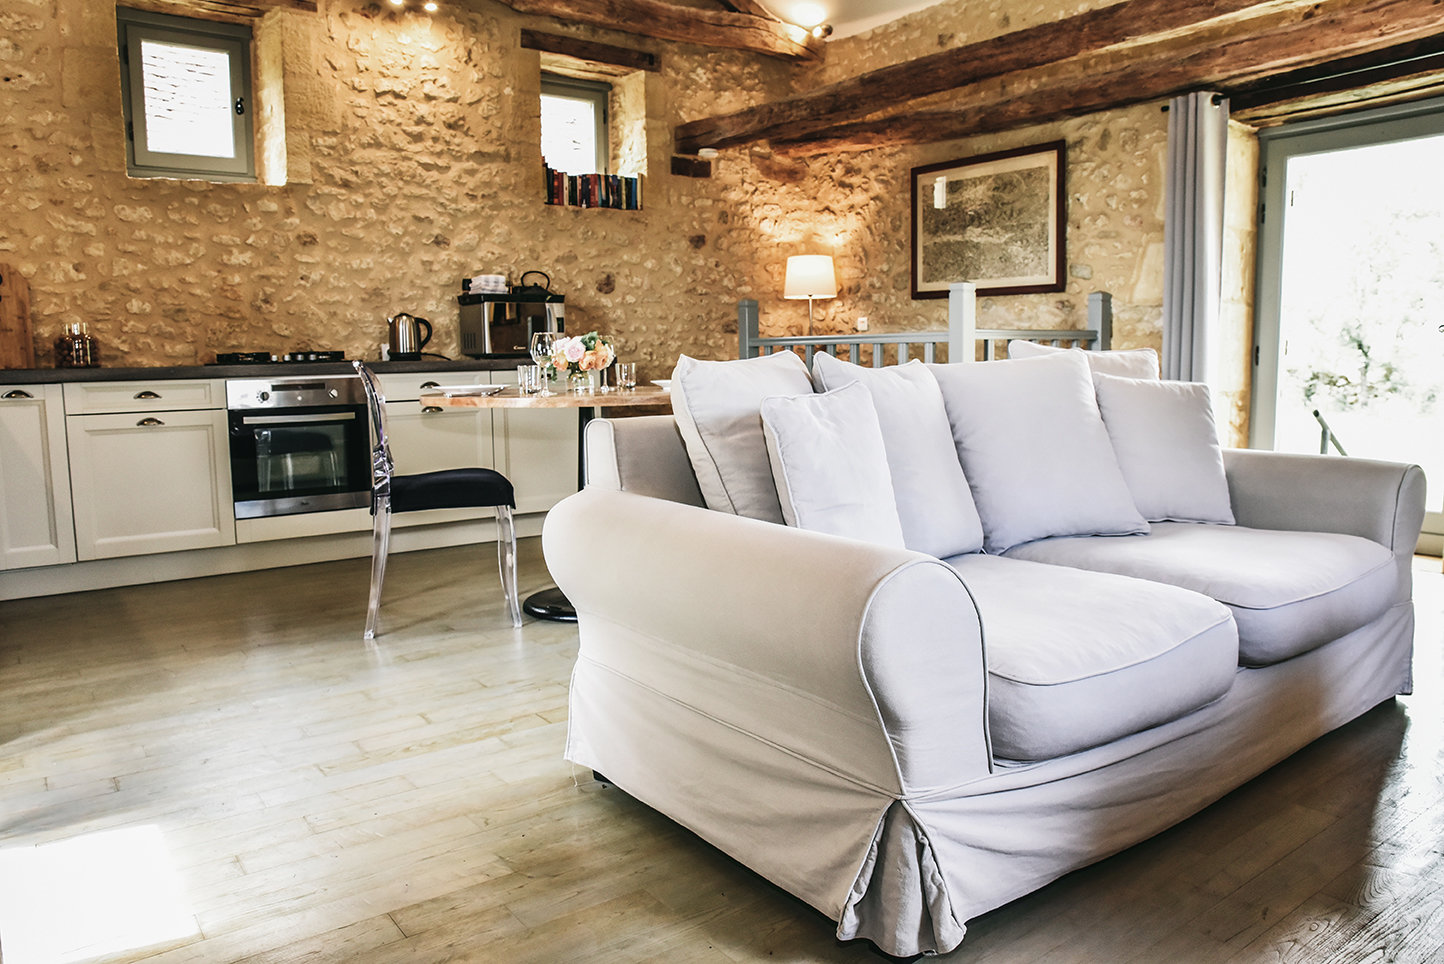 A grey sofa and open kitchen on the upper ground floor of Le Mazet, a charming cottage for rent in the Dordogne